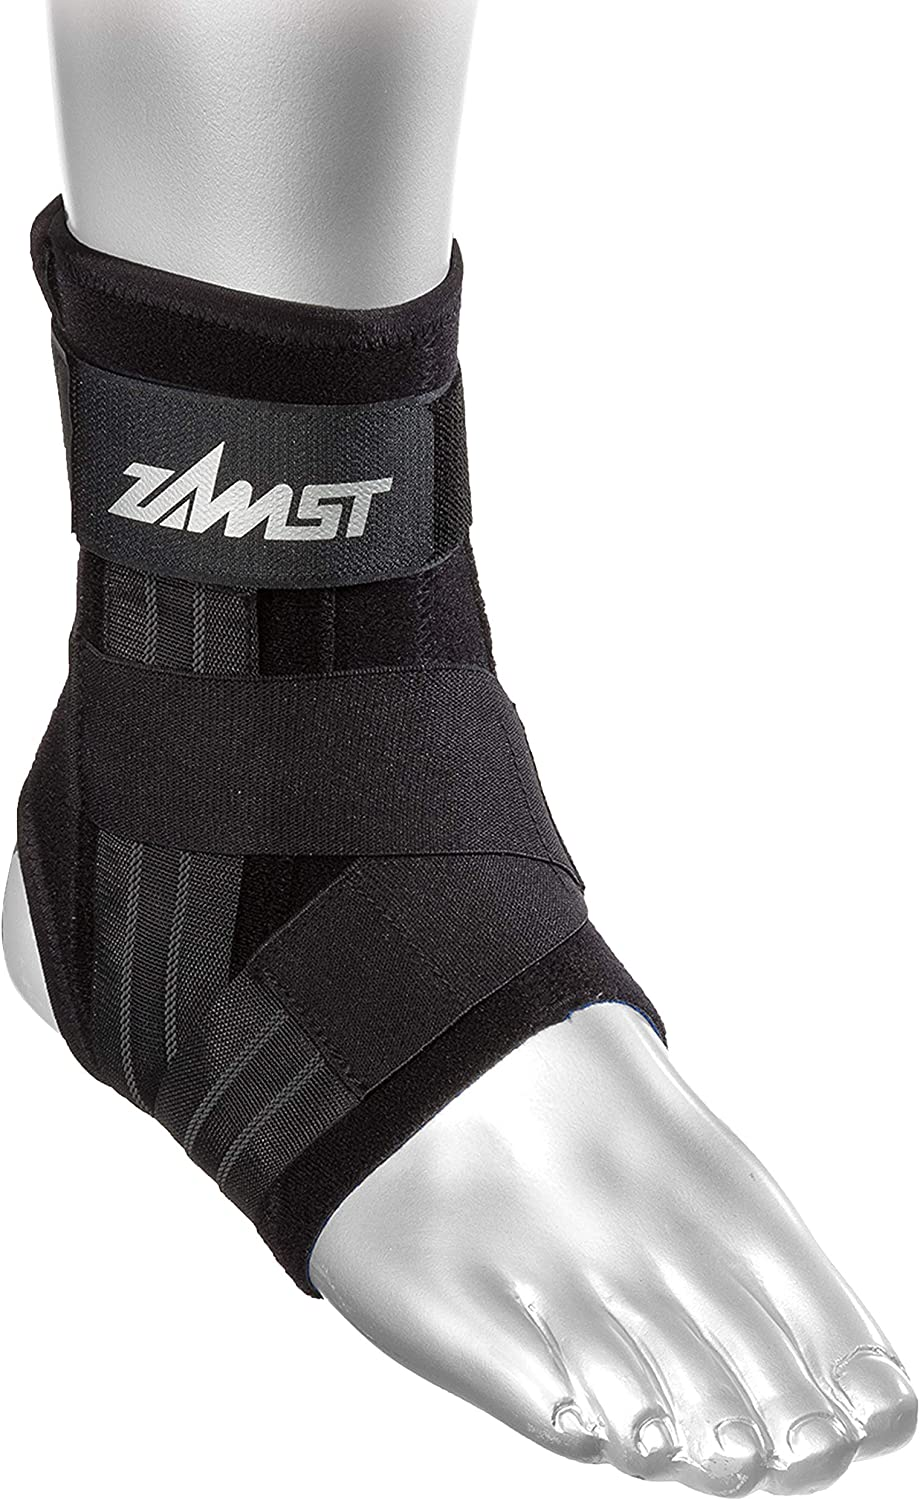 Zamst A1 Moderate Compression Ankle Support